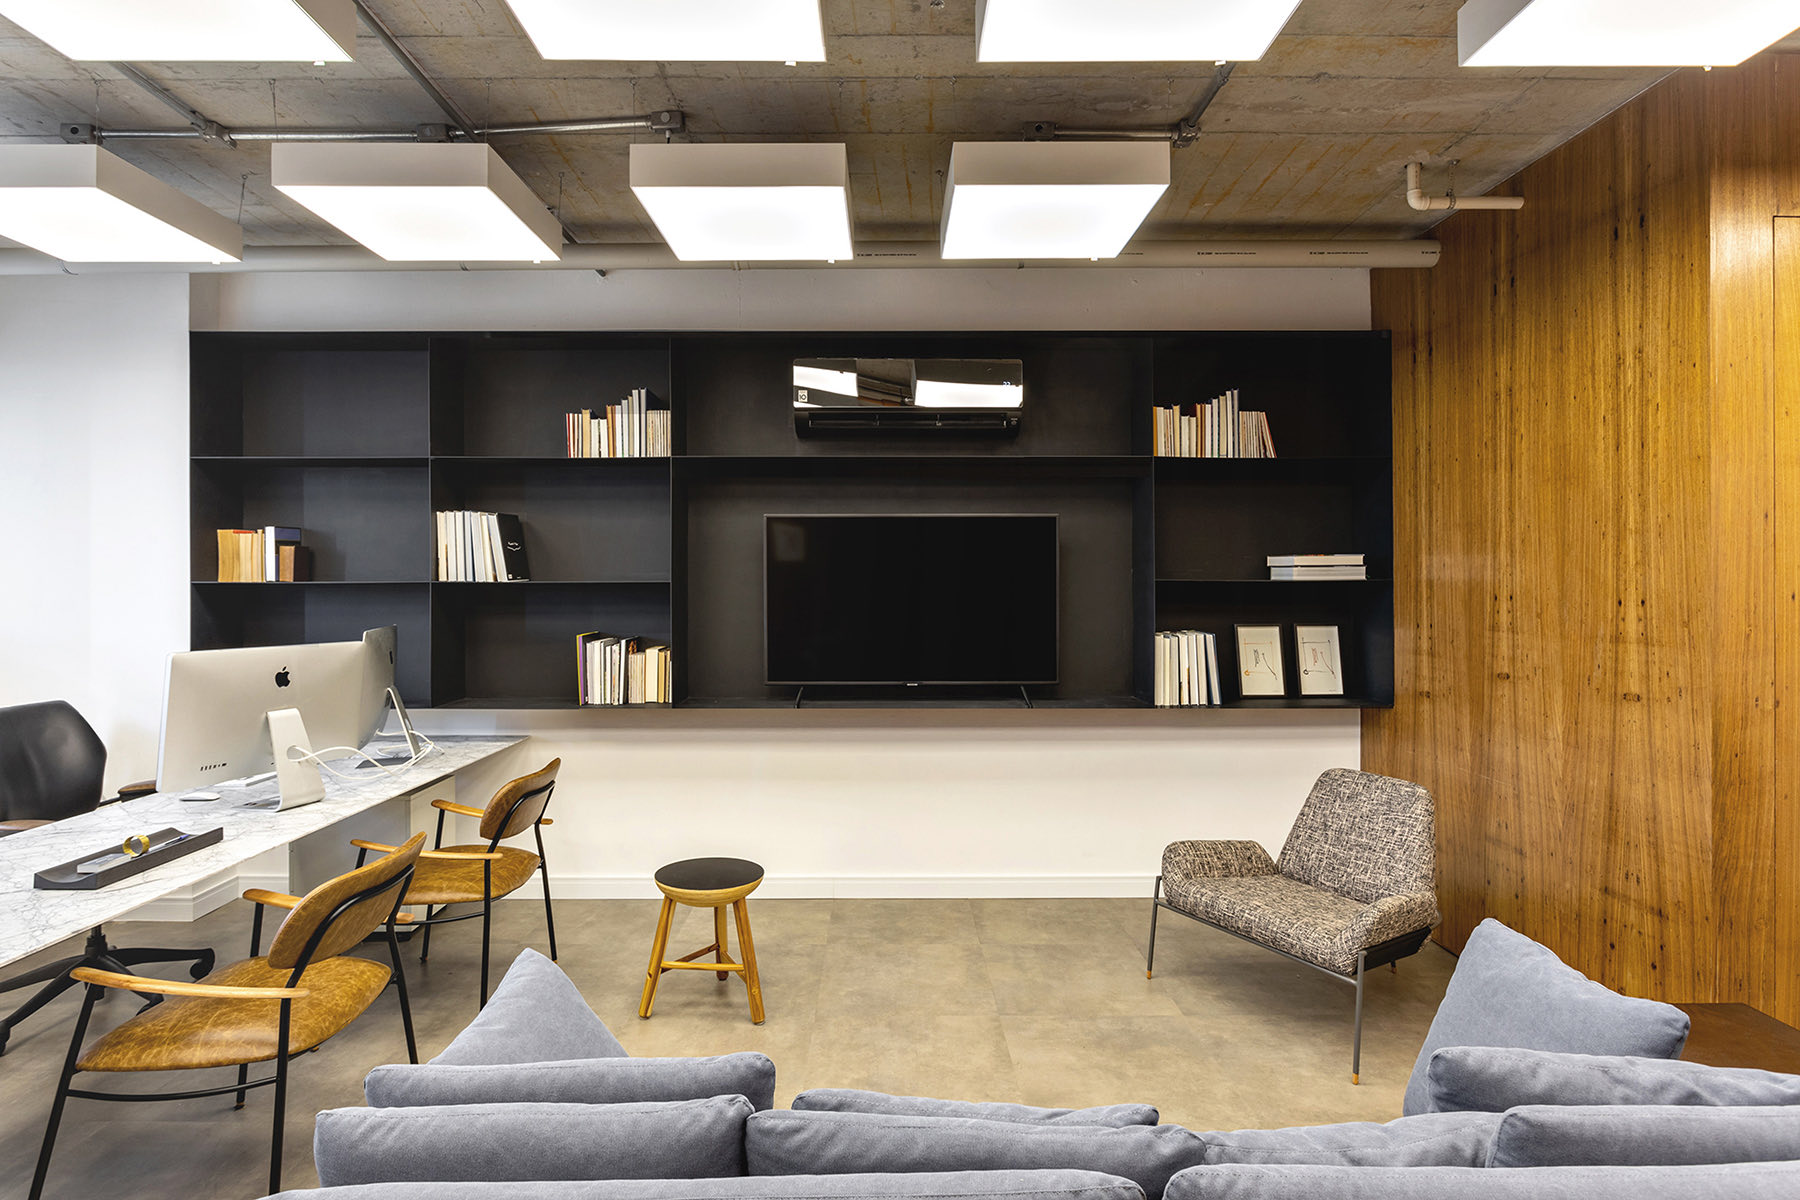 A Peek Inside Piraci Oliveira's Sao Paulo Office